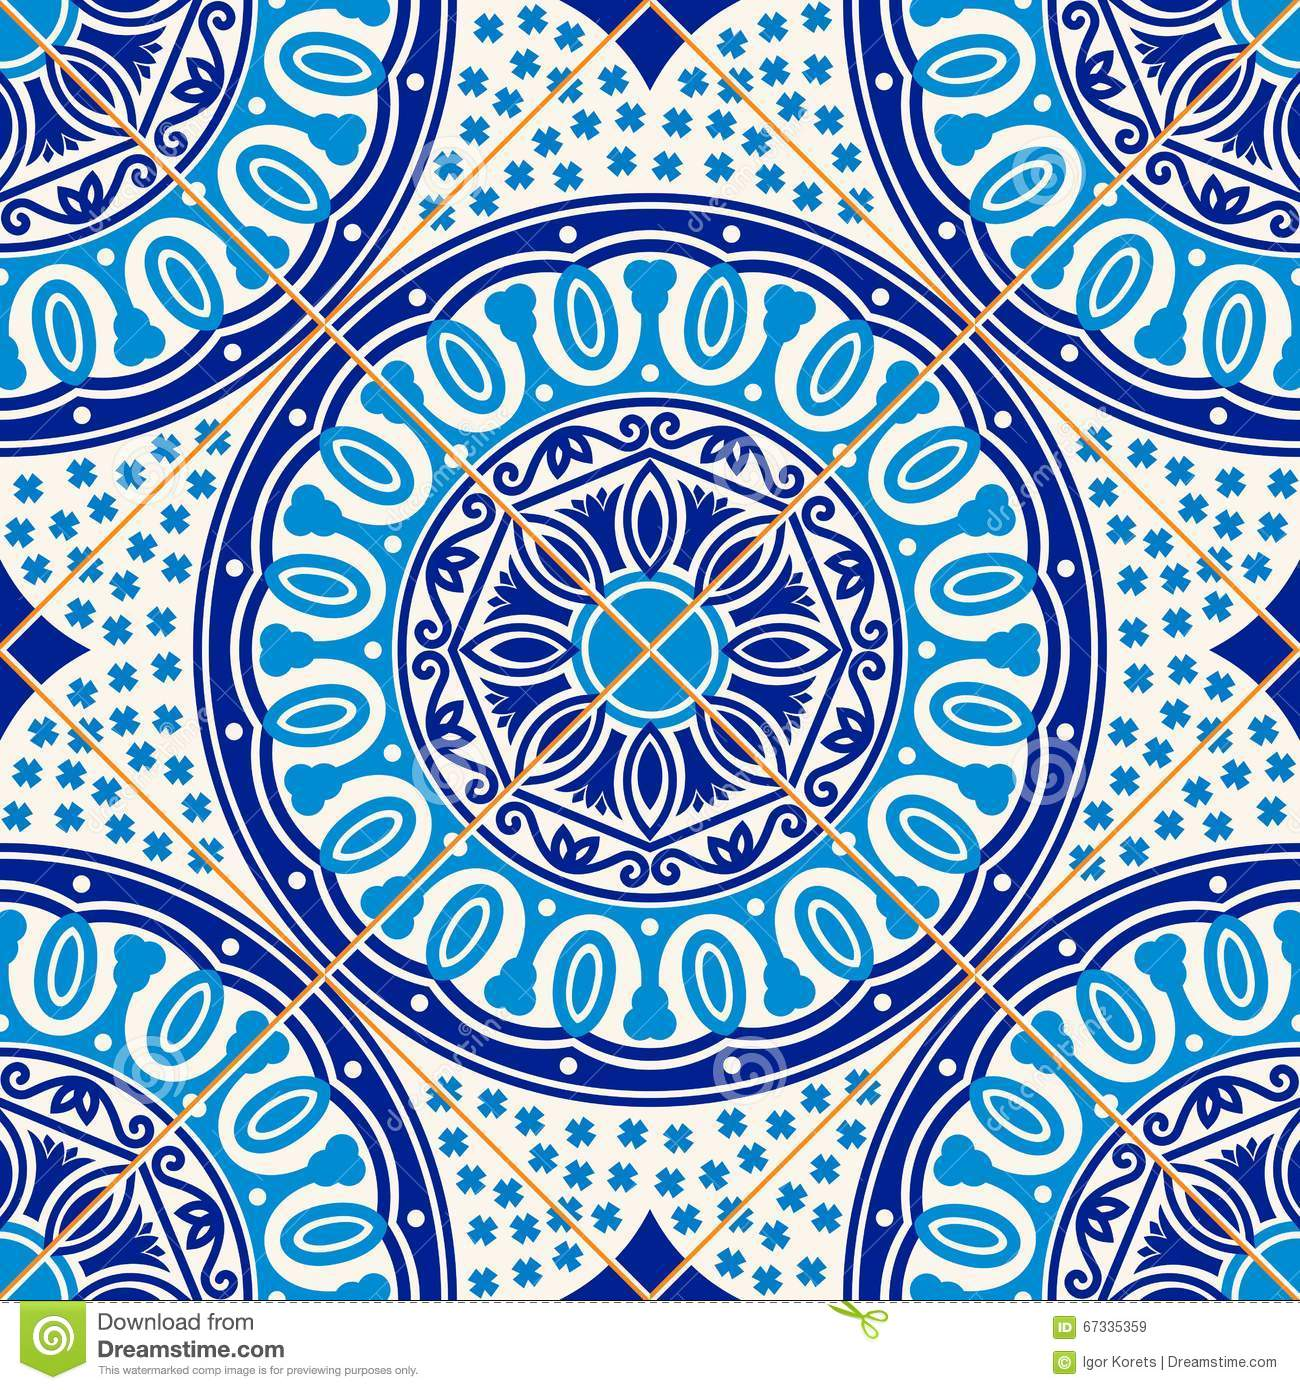 Stock Vector: Seamless pattern . Turkish, Moroccan, Portuguese tiles ...